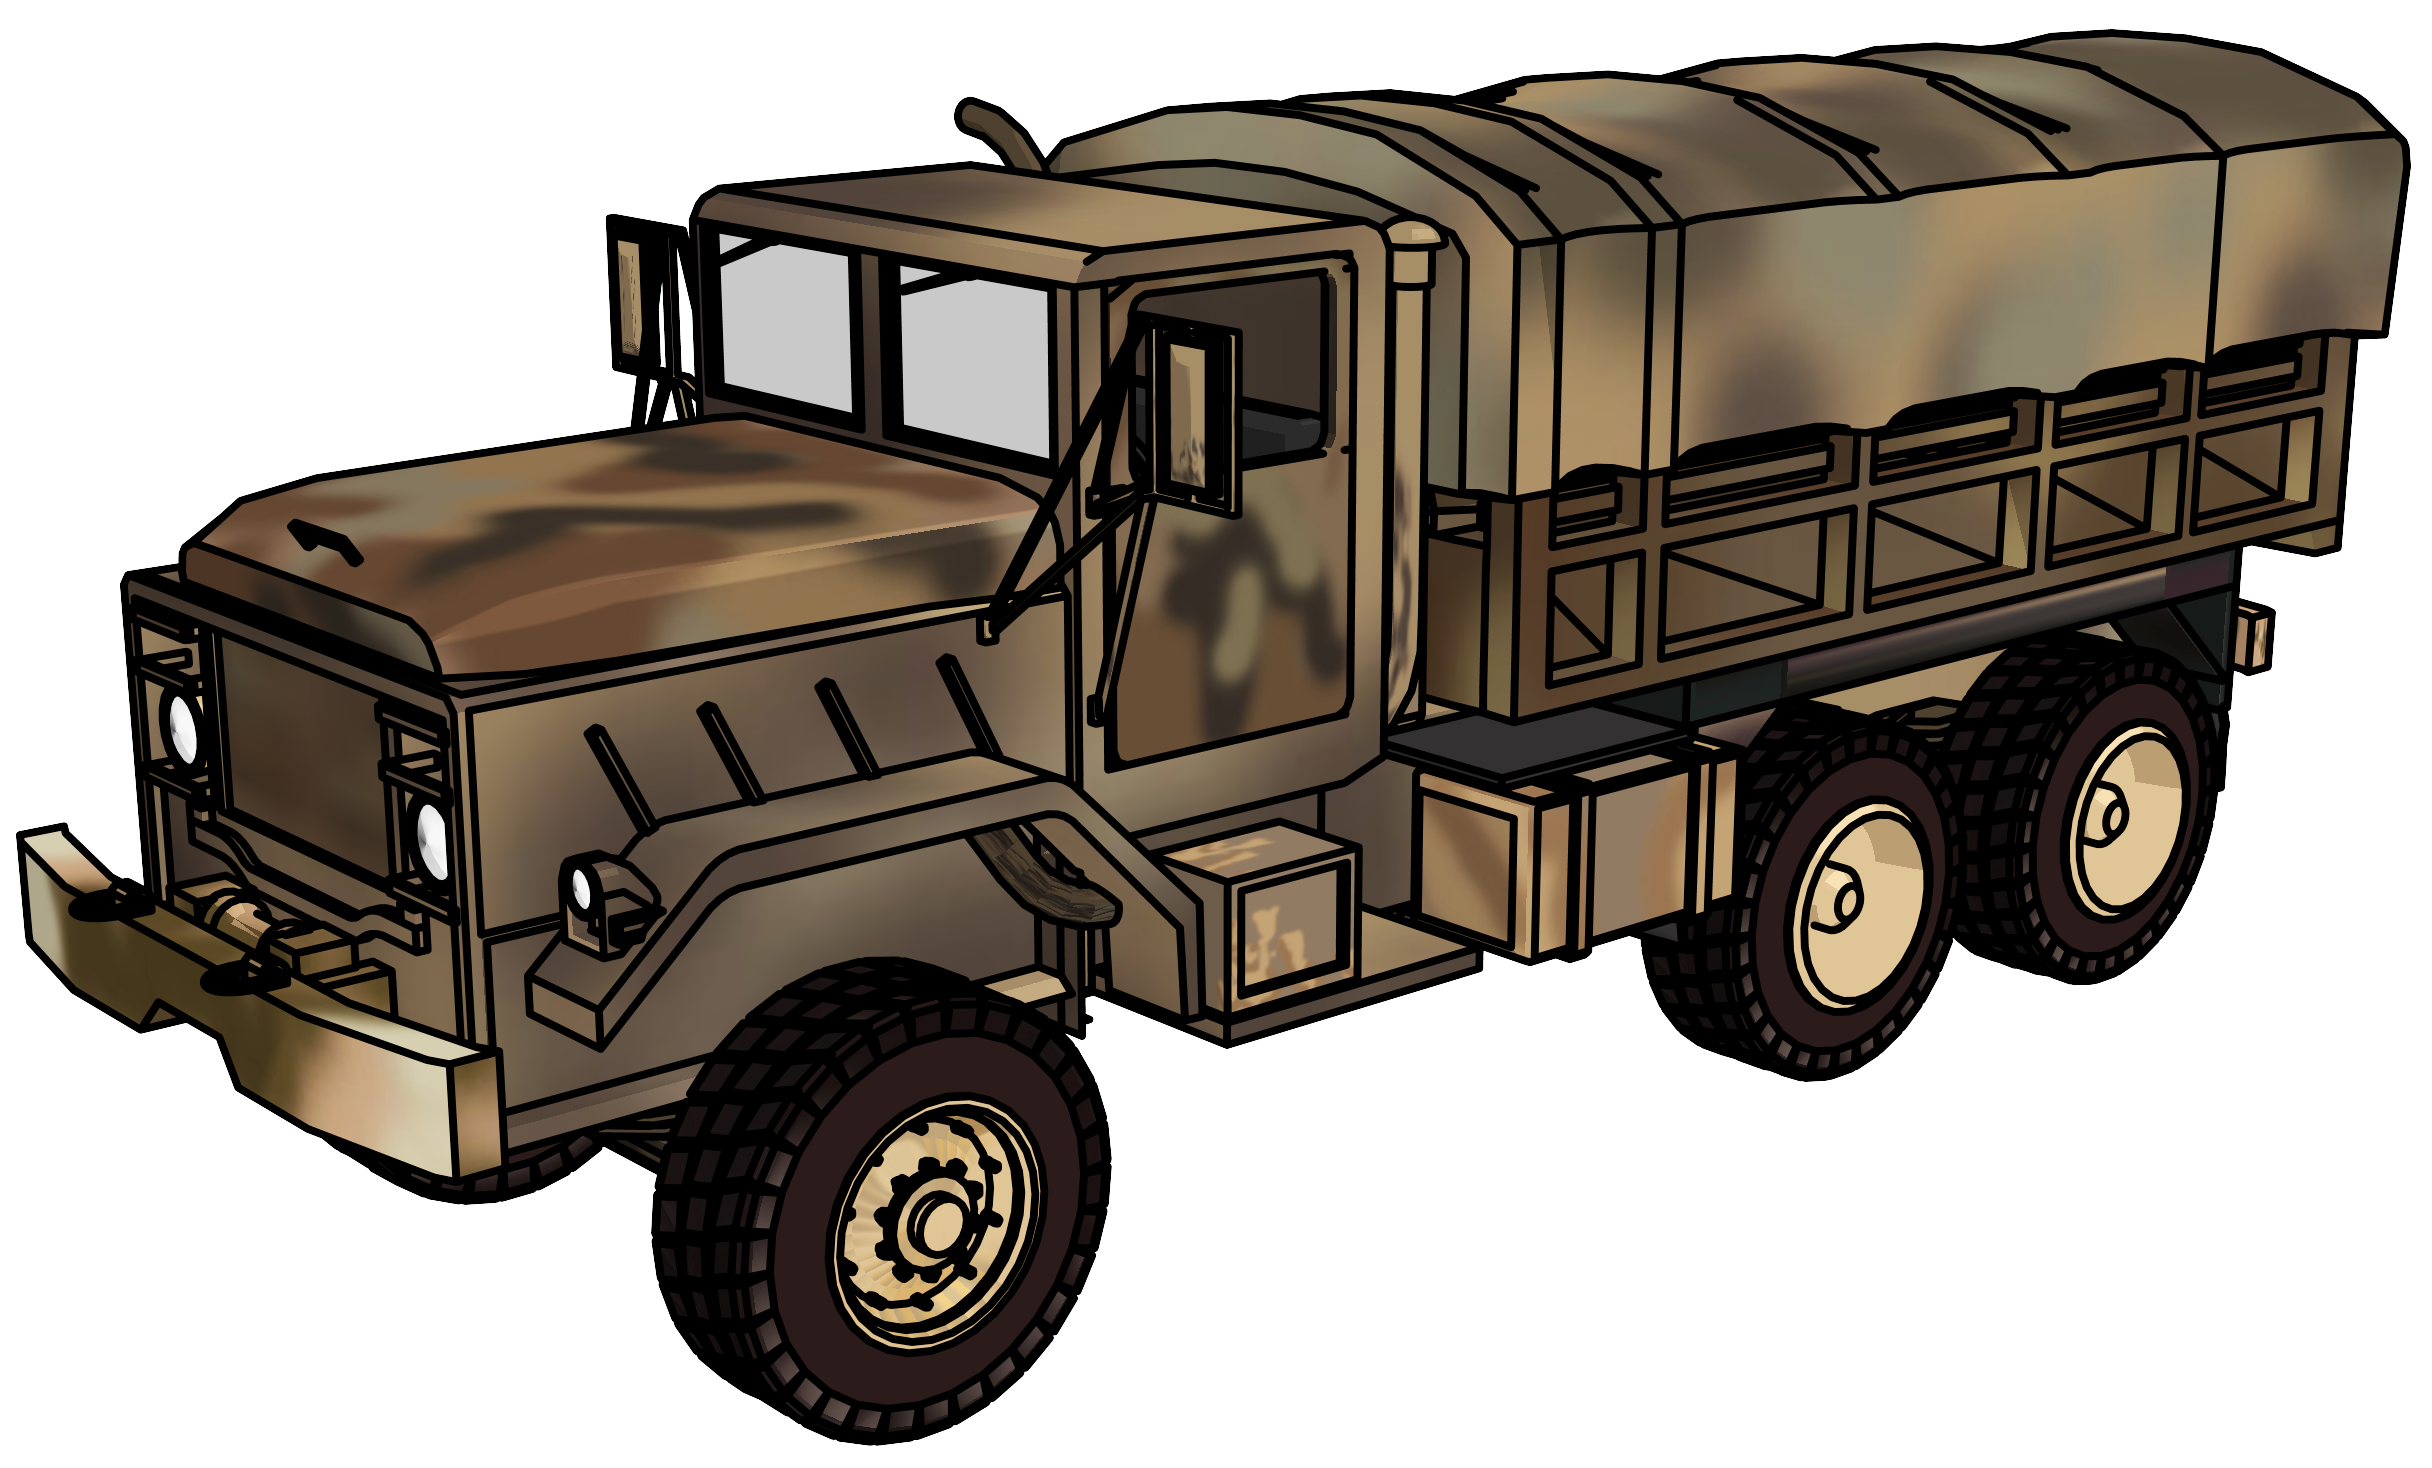 Clipart car candy. Truck military vehicle clip